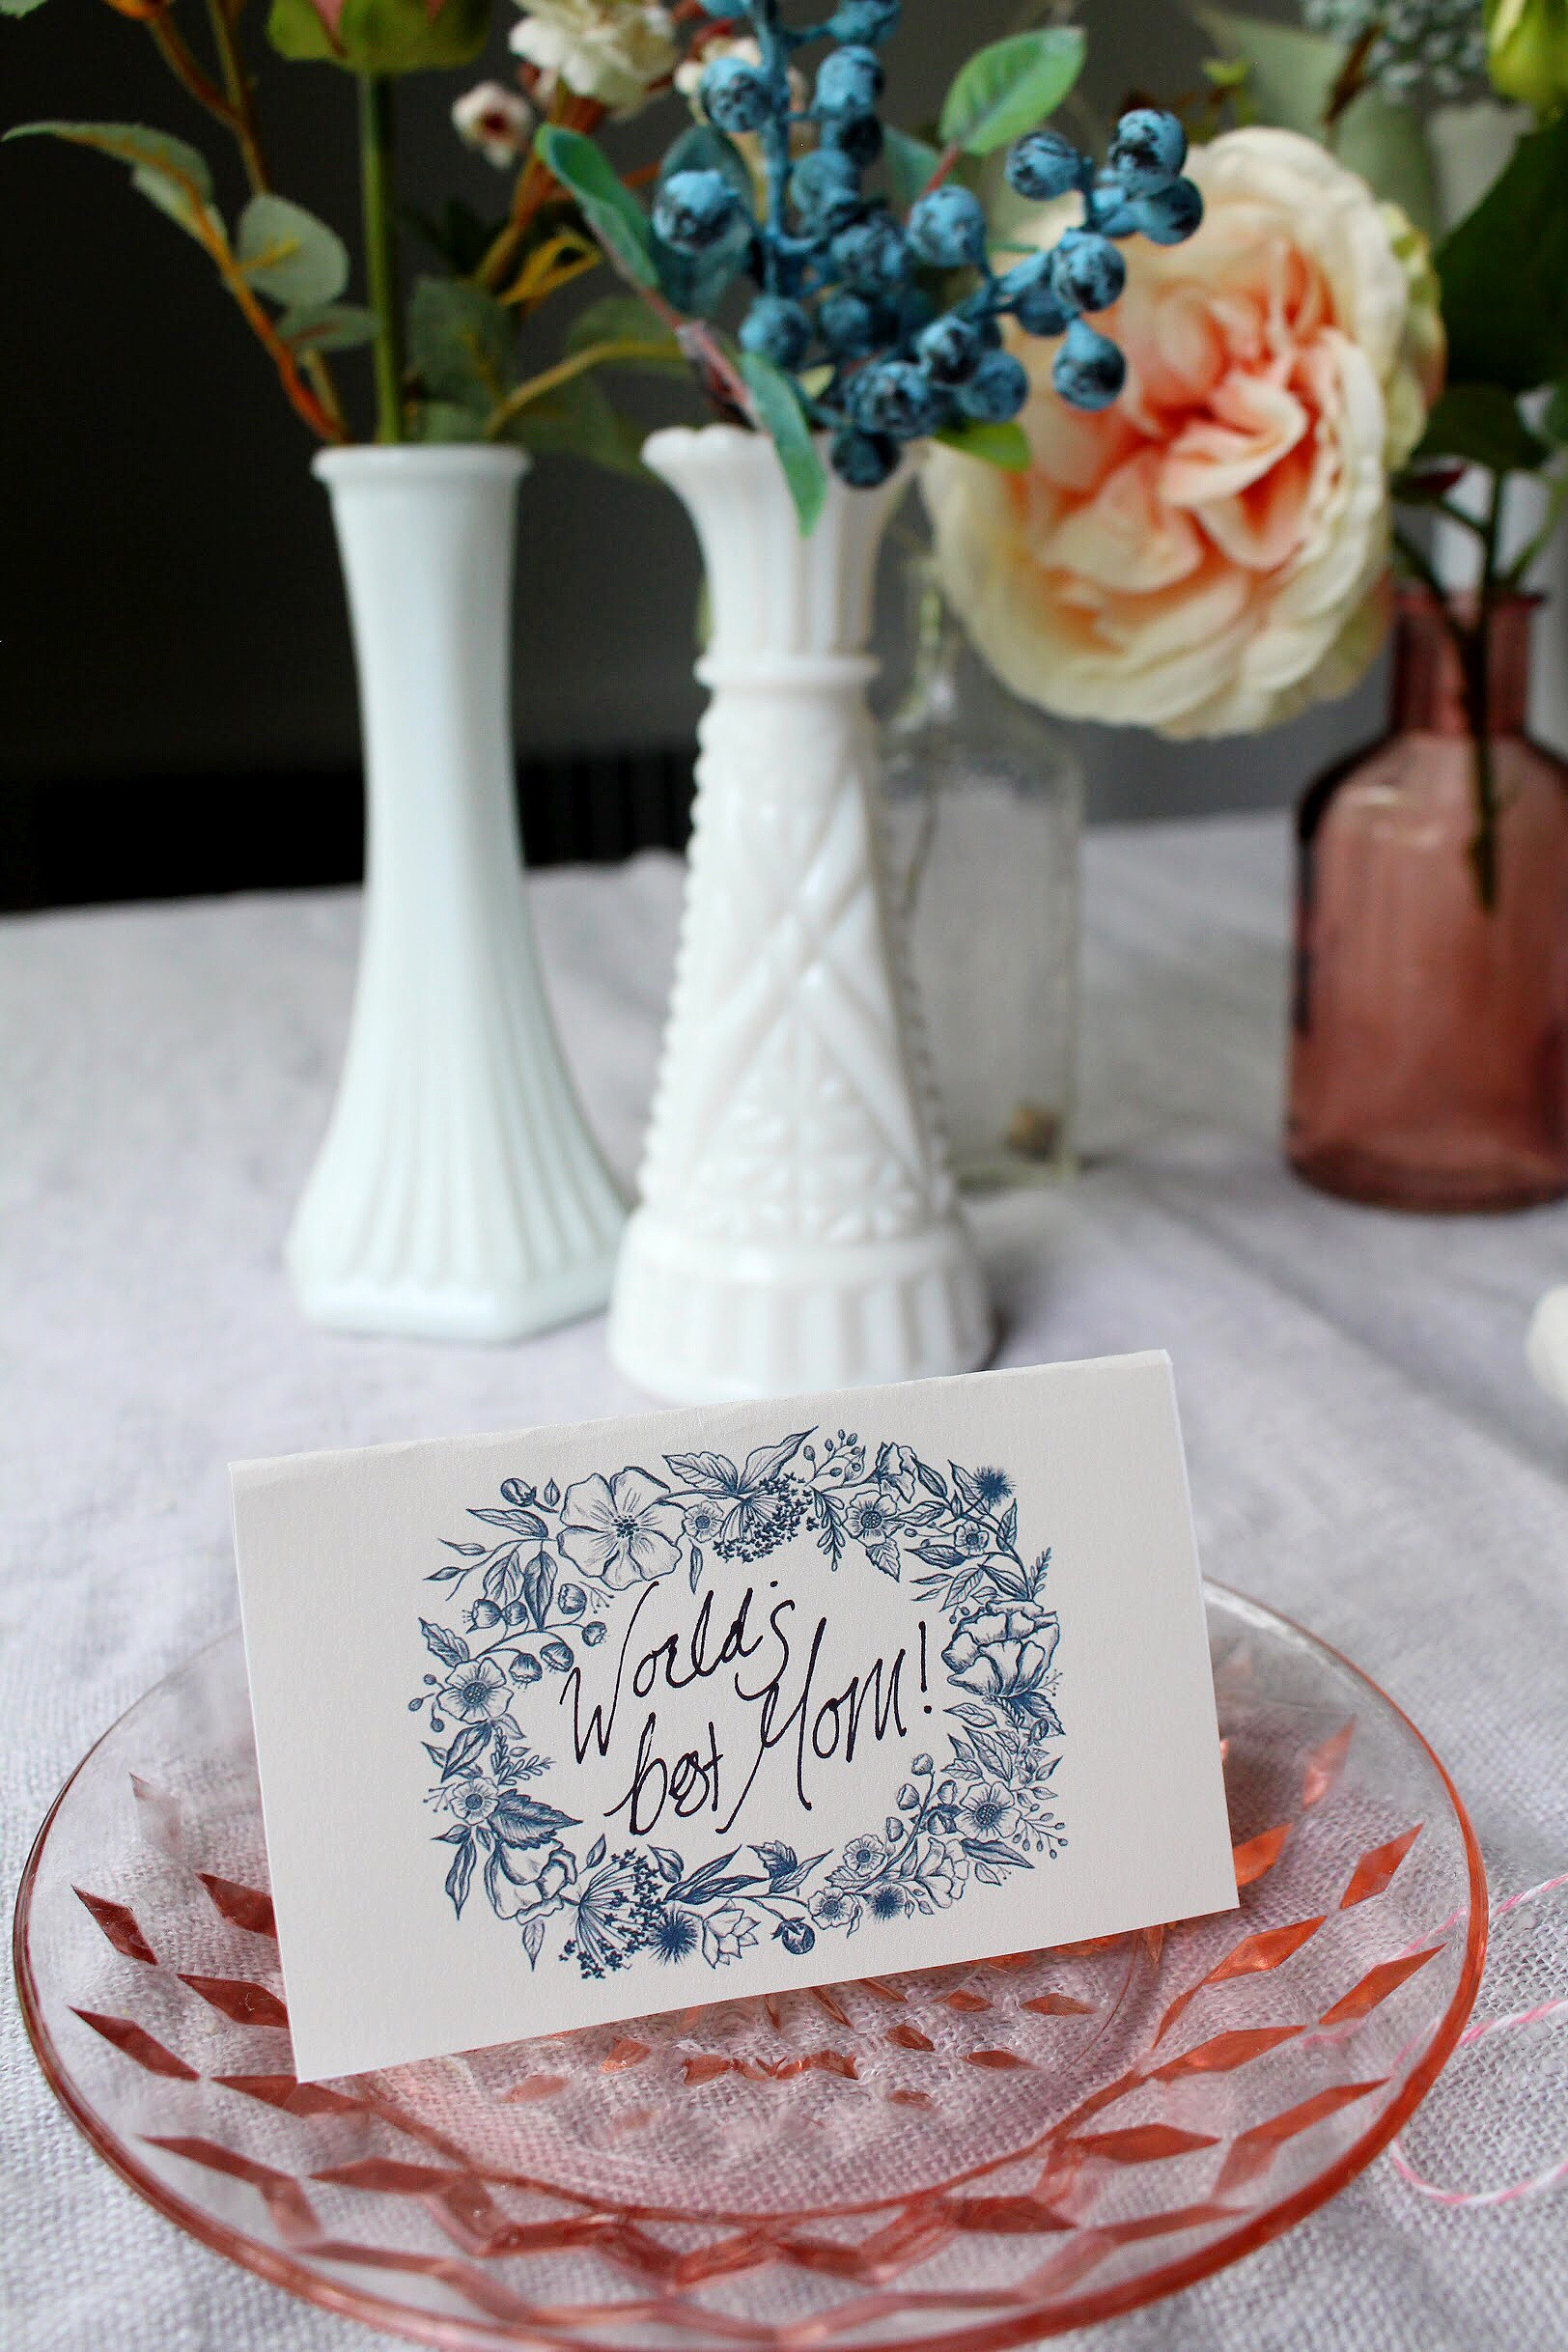 Using Wedding Downloads for Your Mother's Day Table Decor